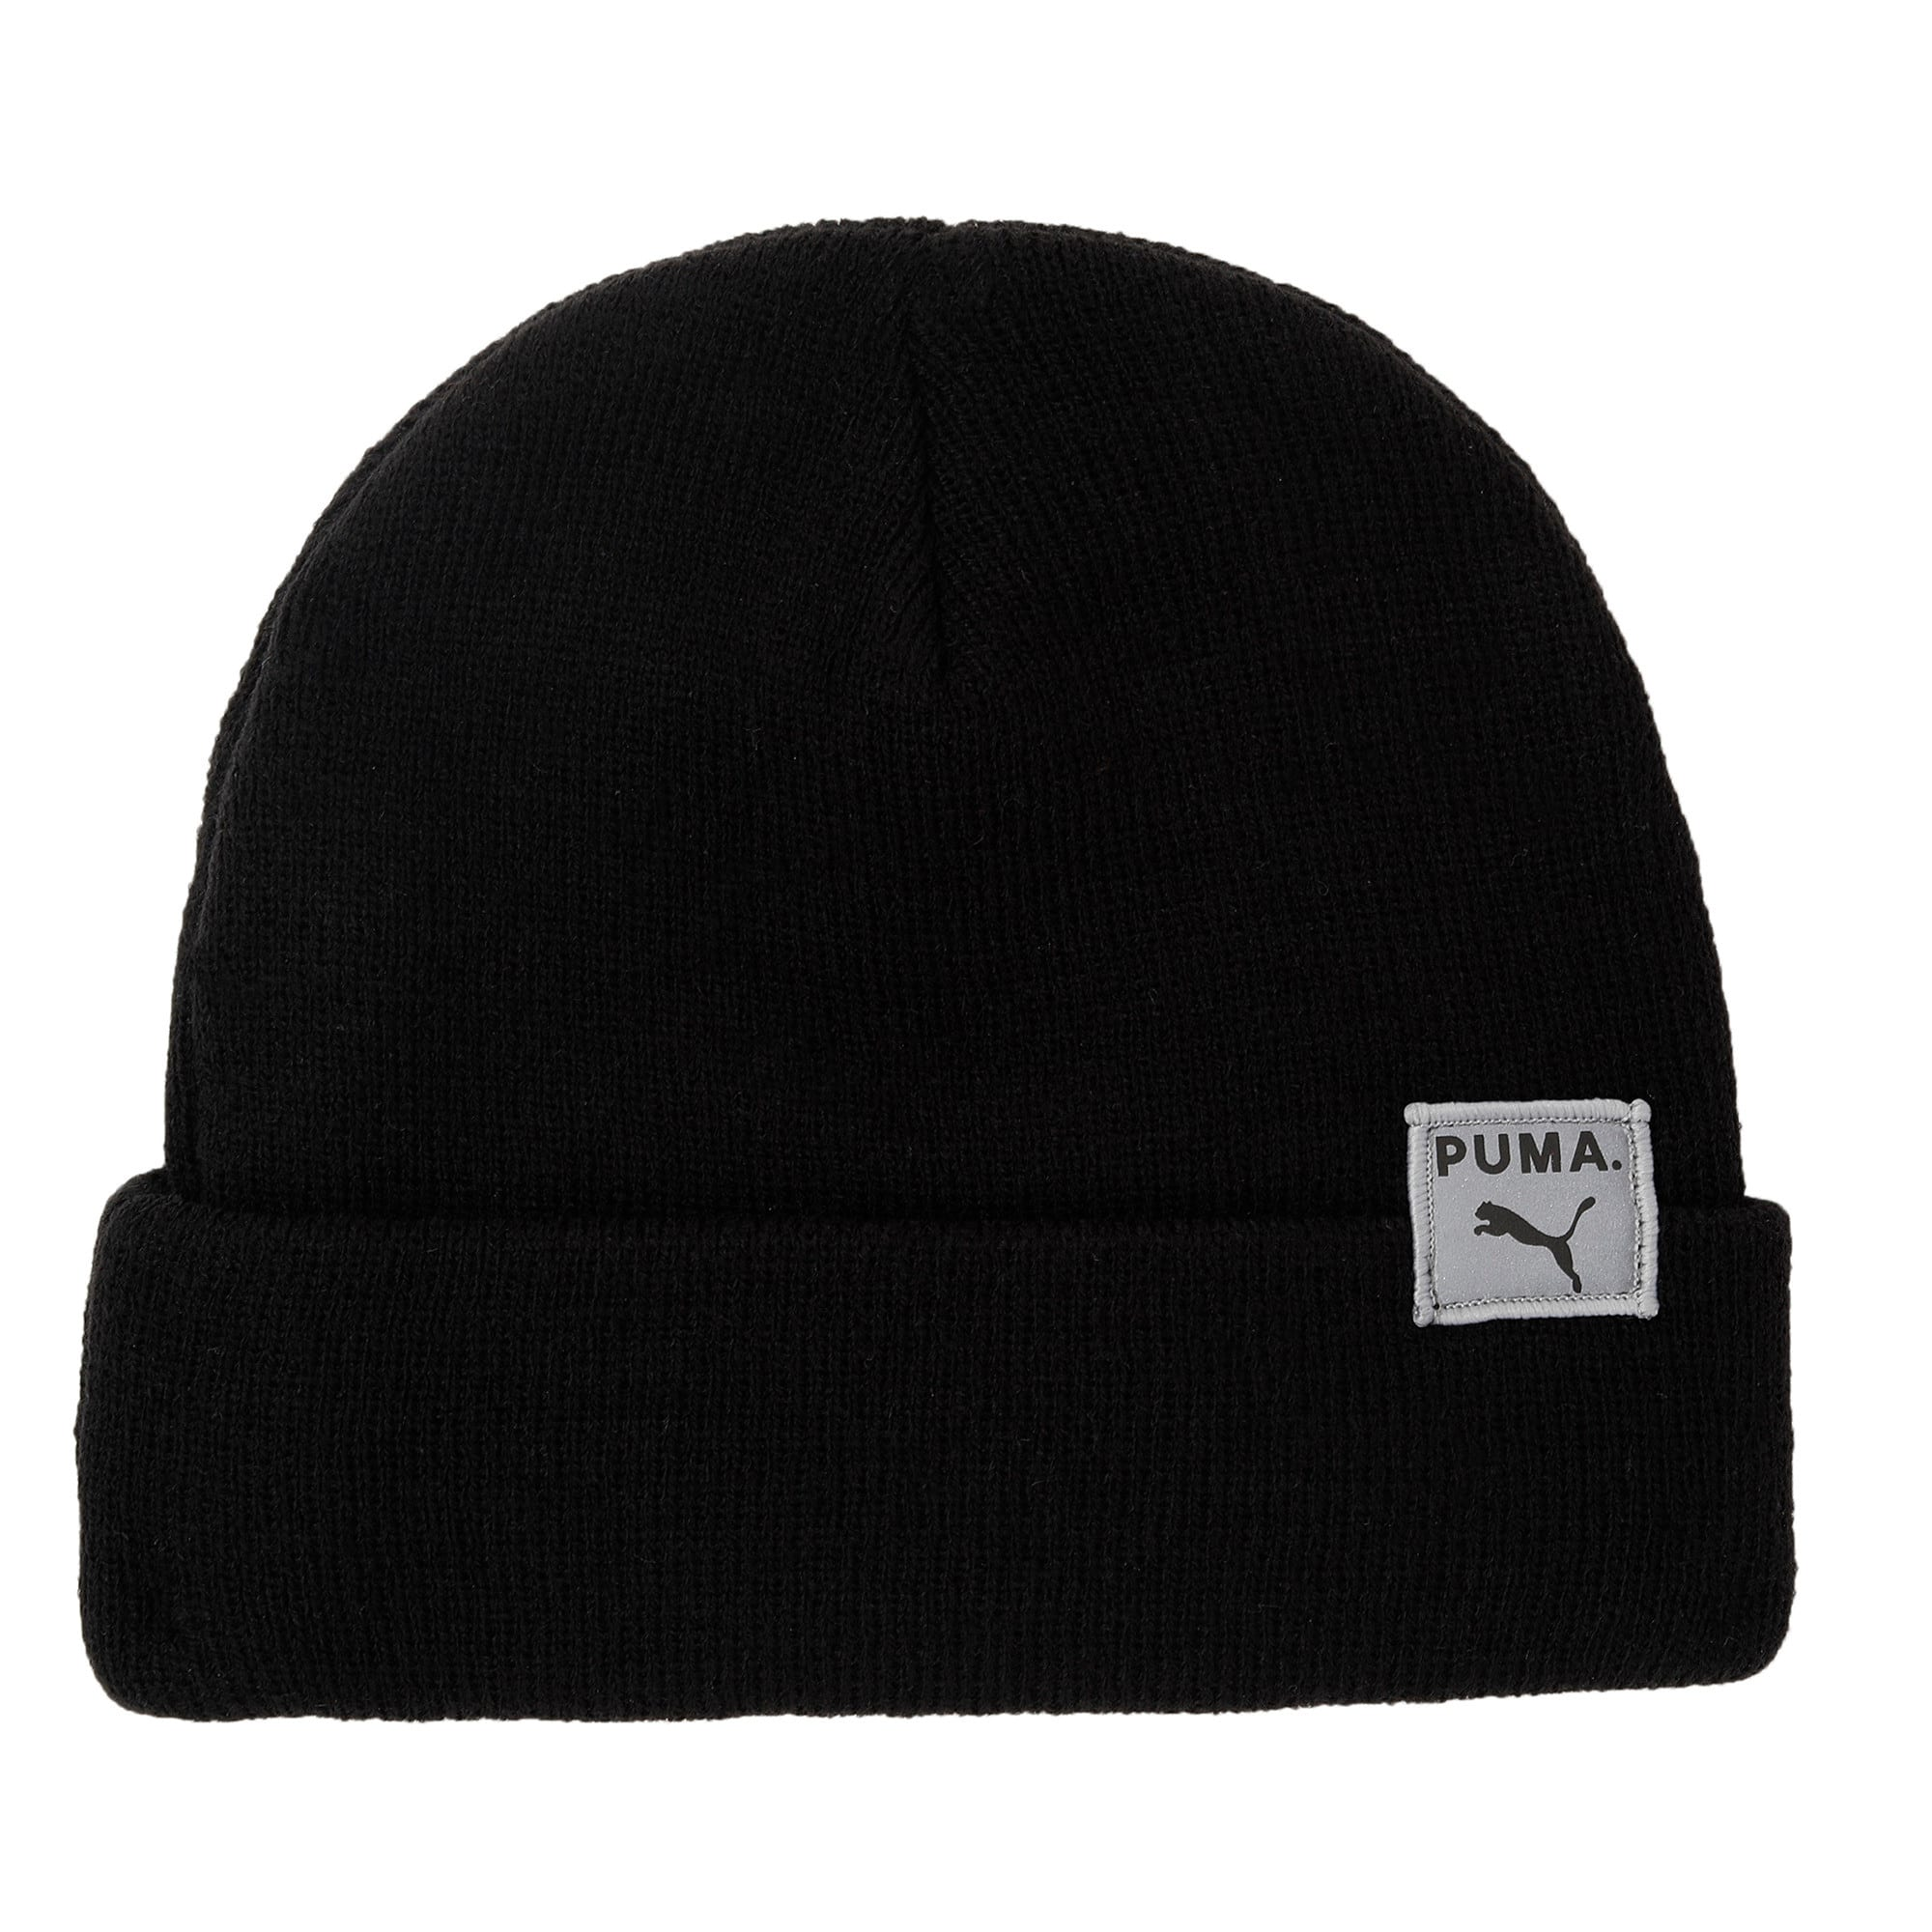 Thumbnail 1 of Epoch Street Beanie, Puma Black, medium-IND